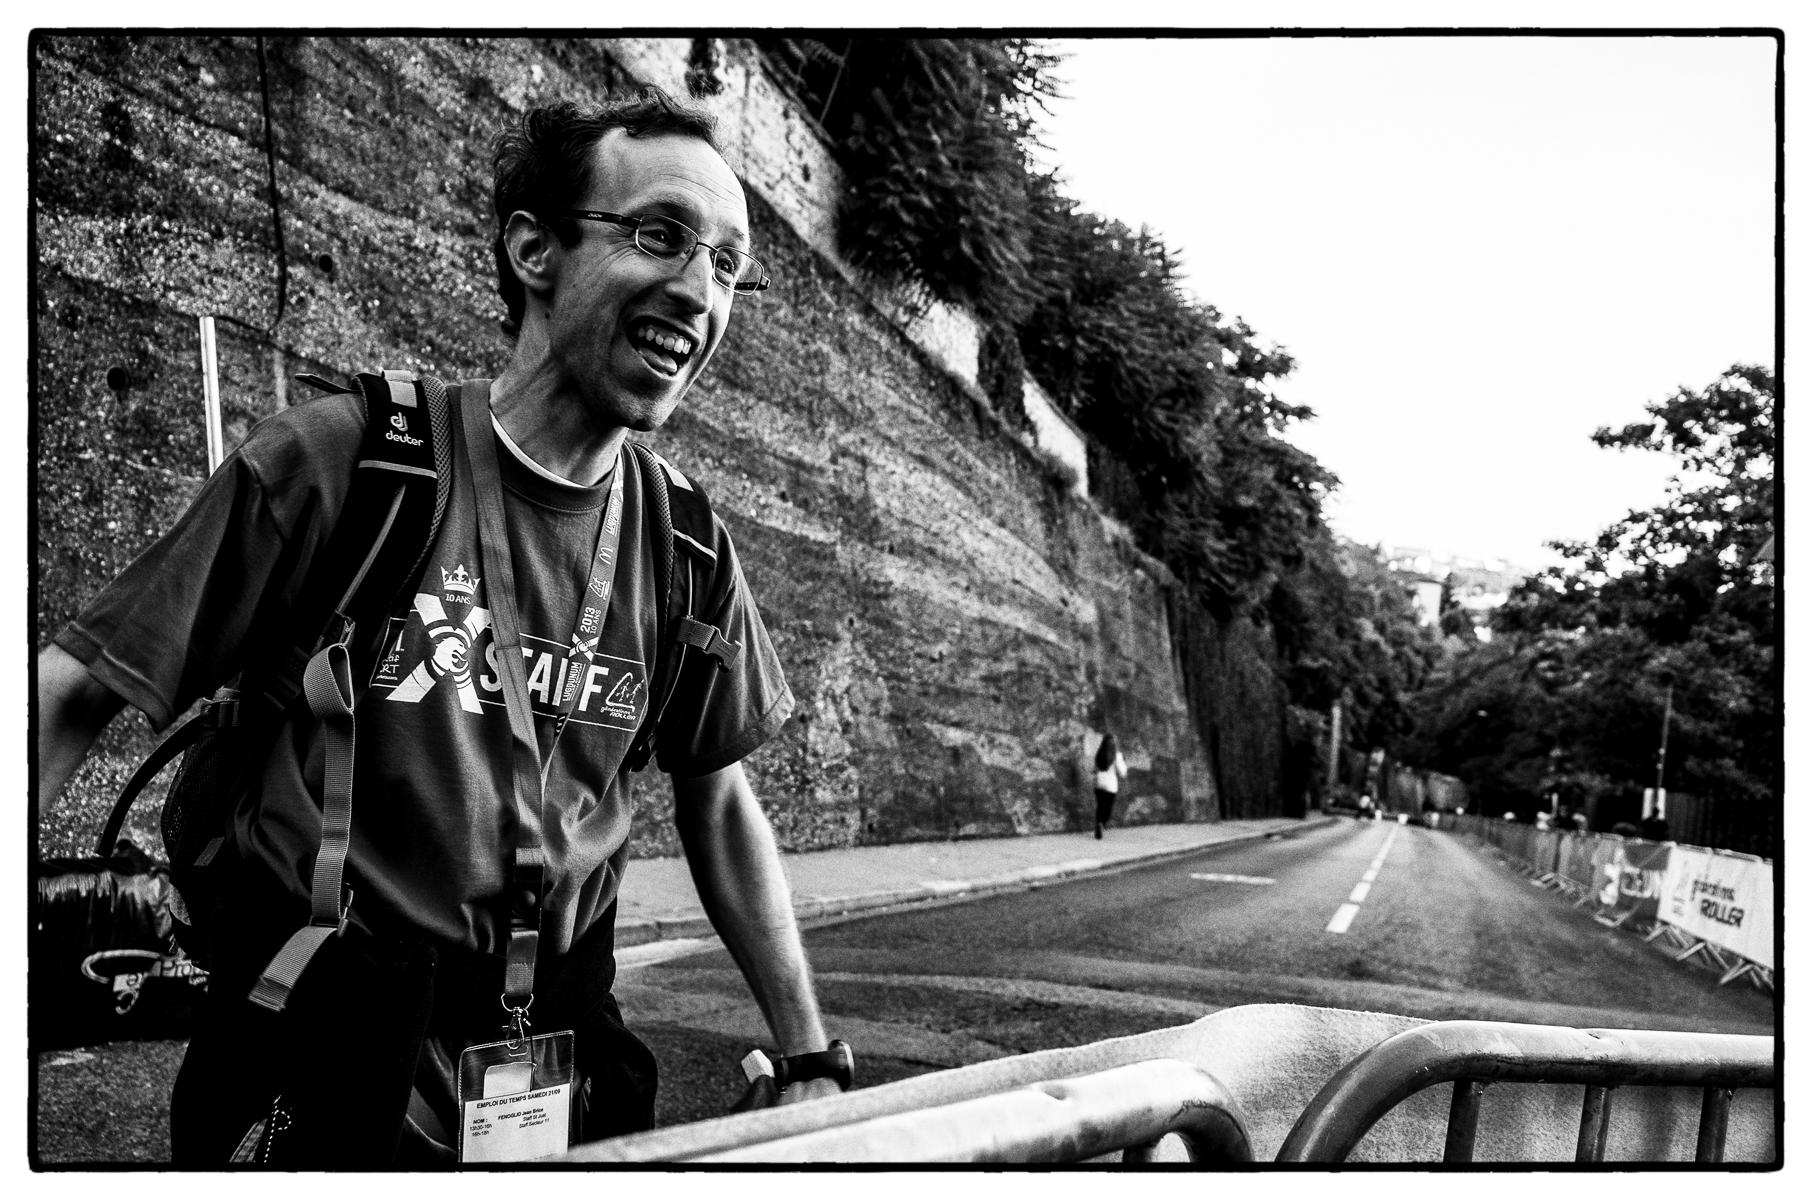 Organizer of In-Line Skating Downhill Race, Lyon, France : street & stories : TIMOTHY FLOYD PHOTOGRAPHER, NATURE PHOTOGRAPHY, PHOTO ESSAYS, PHOTOJOURNALISM